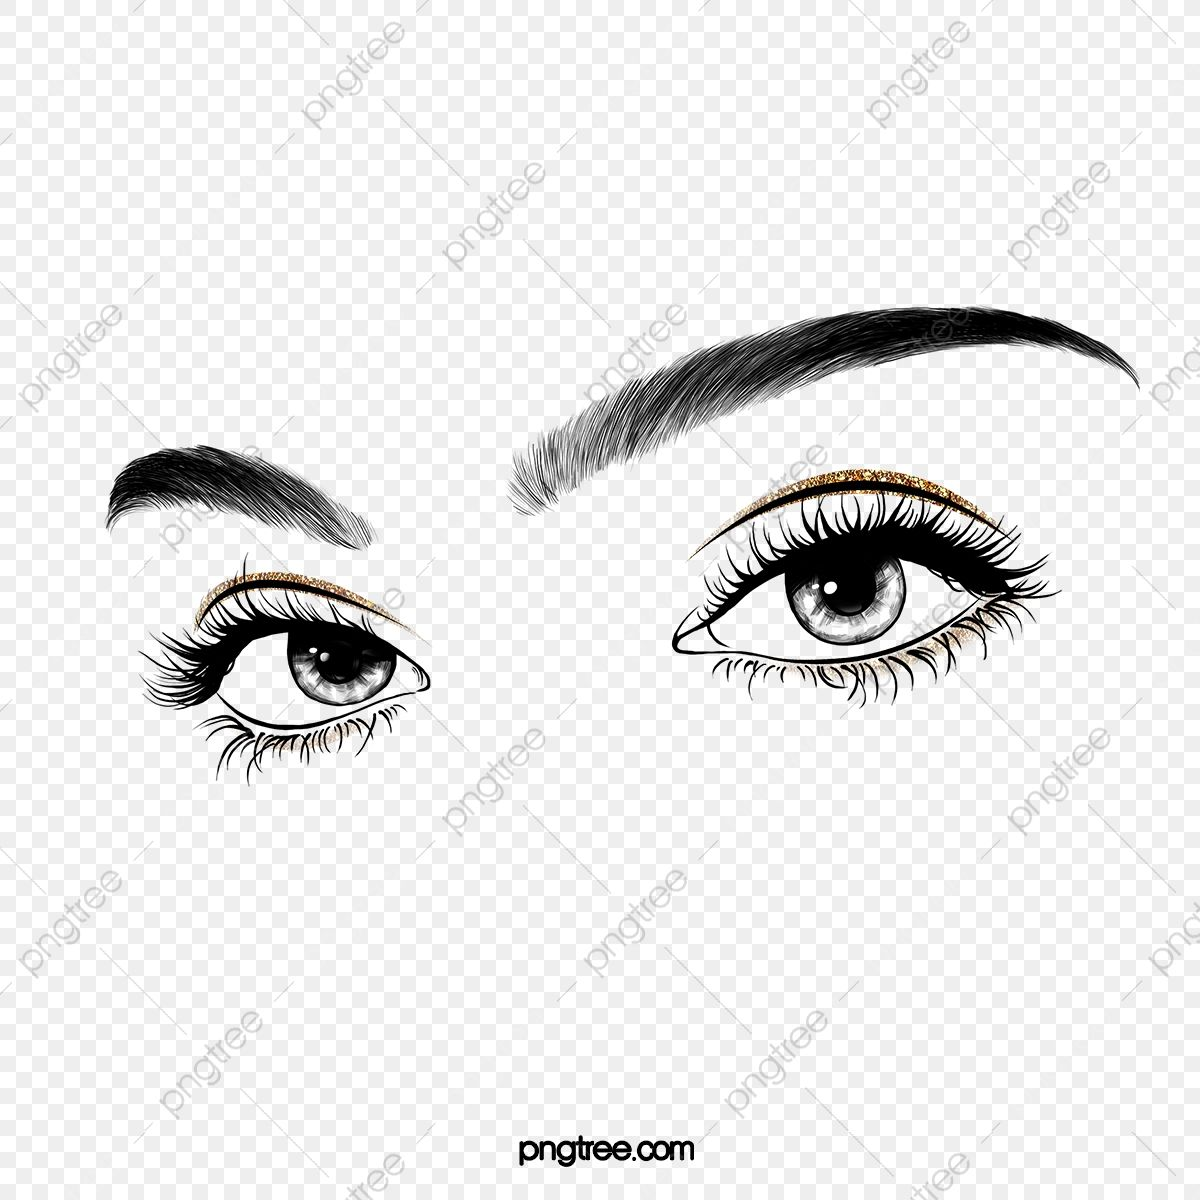 Color Makeup Eye Lashes Eyebrow Clipart Eyes Black And White Cosmetics Png Transparent Clipart Image And Psd File For Free Download Hologram Colors Eyelashes Simple Nail Art Designs